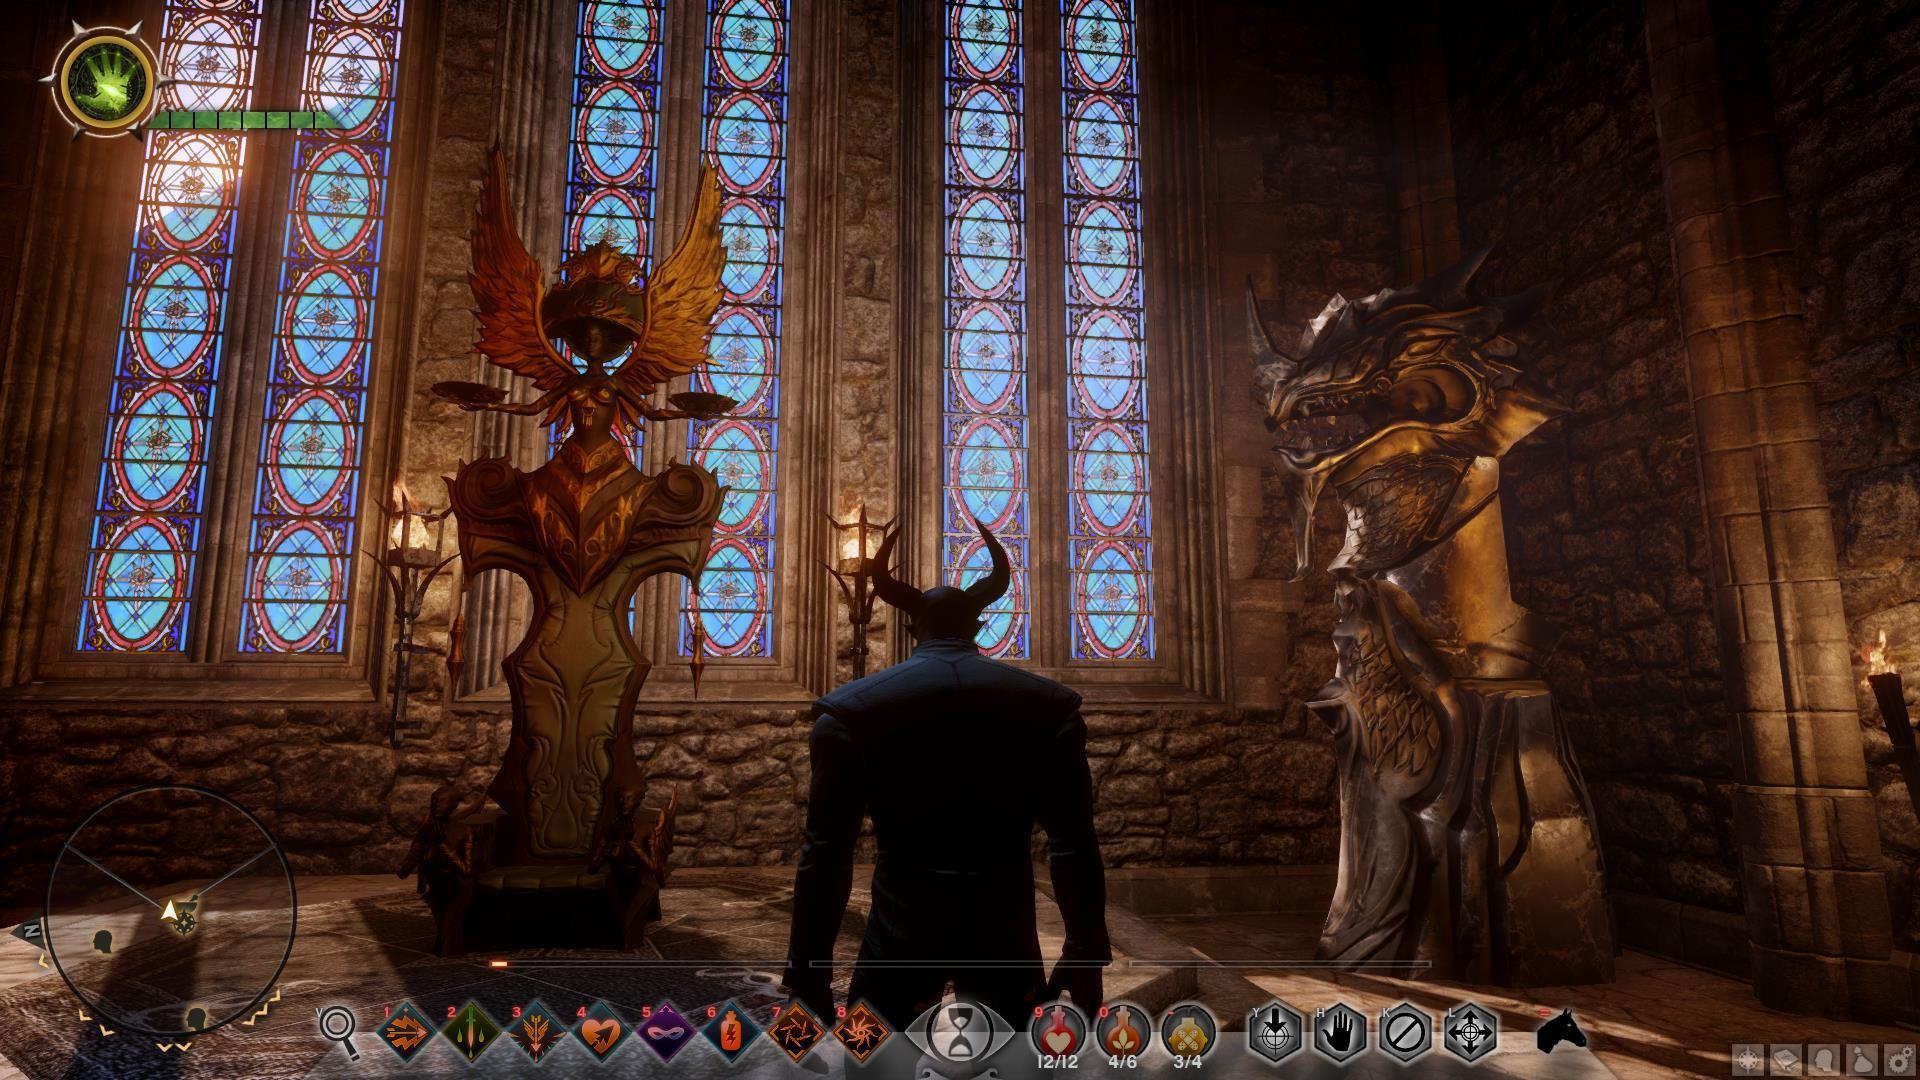 Dragon age inquisition university of orlais